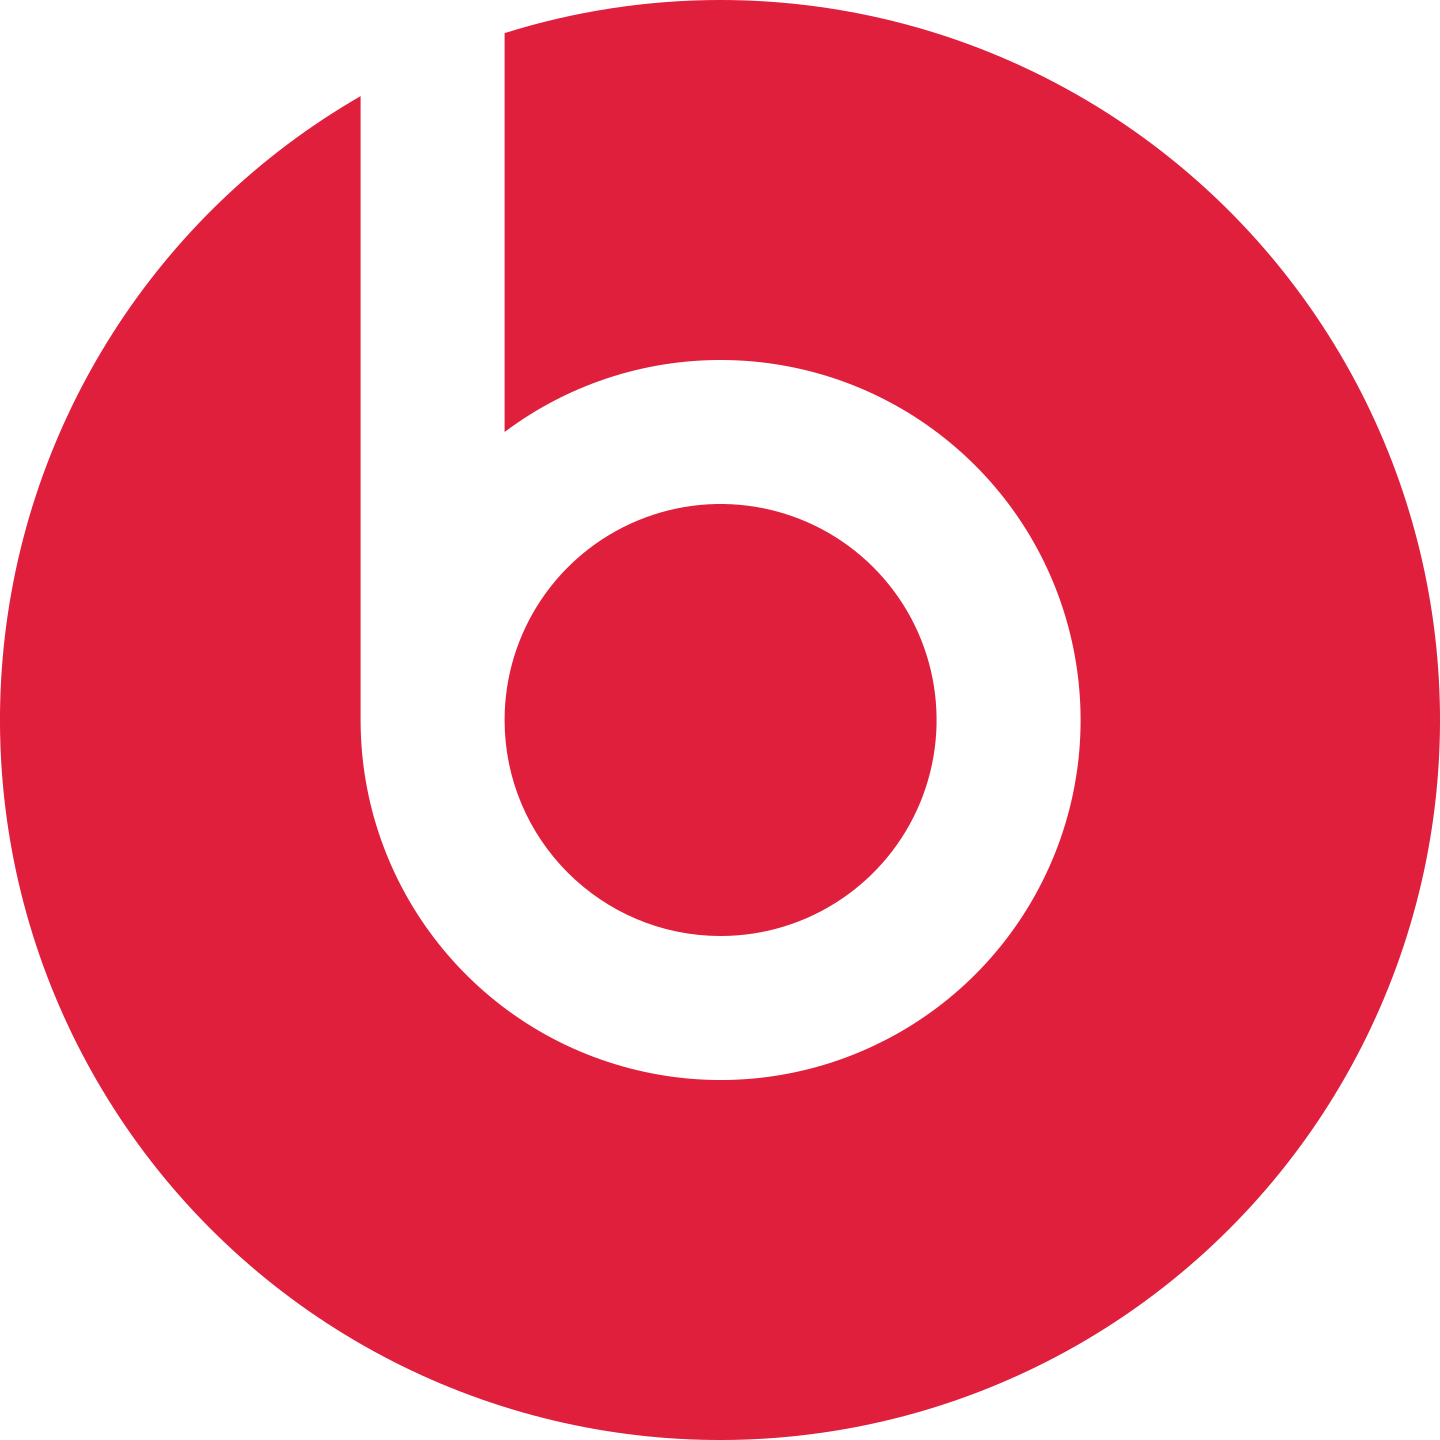 beats by dre logo 2 - Beats by Dr Dre Logo